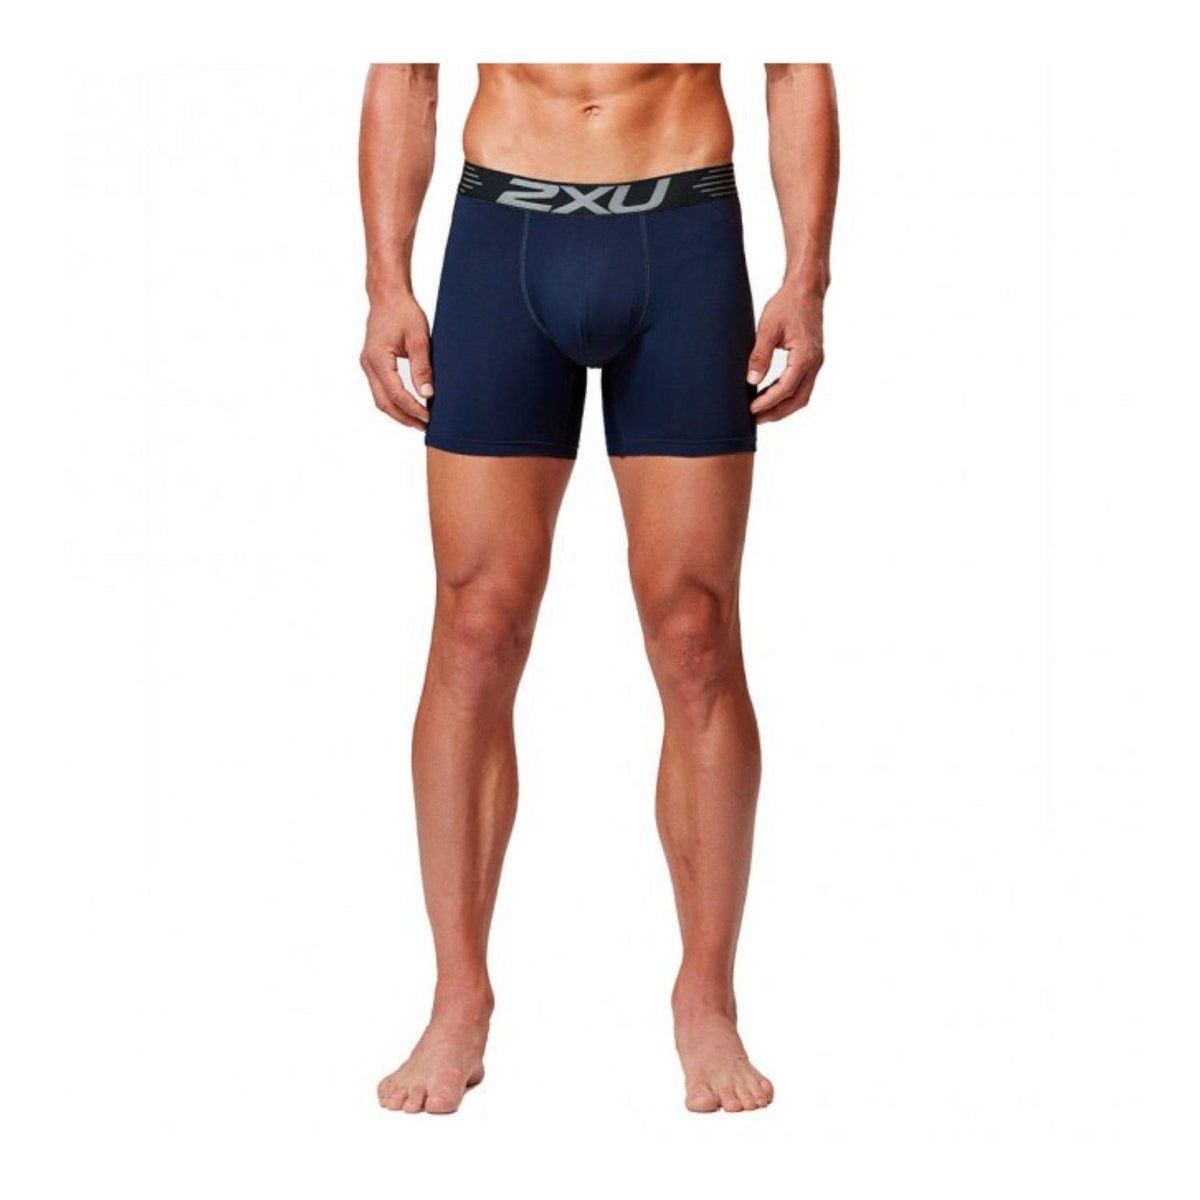 "2XU Ice-X 6"" Sports Boxer Shorts"